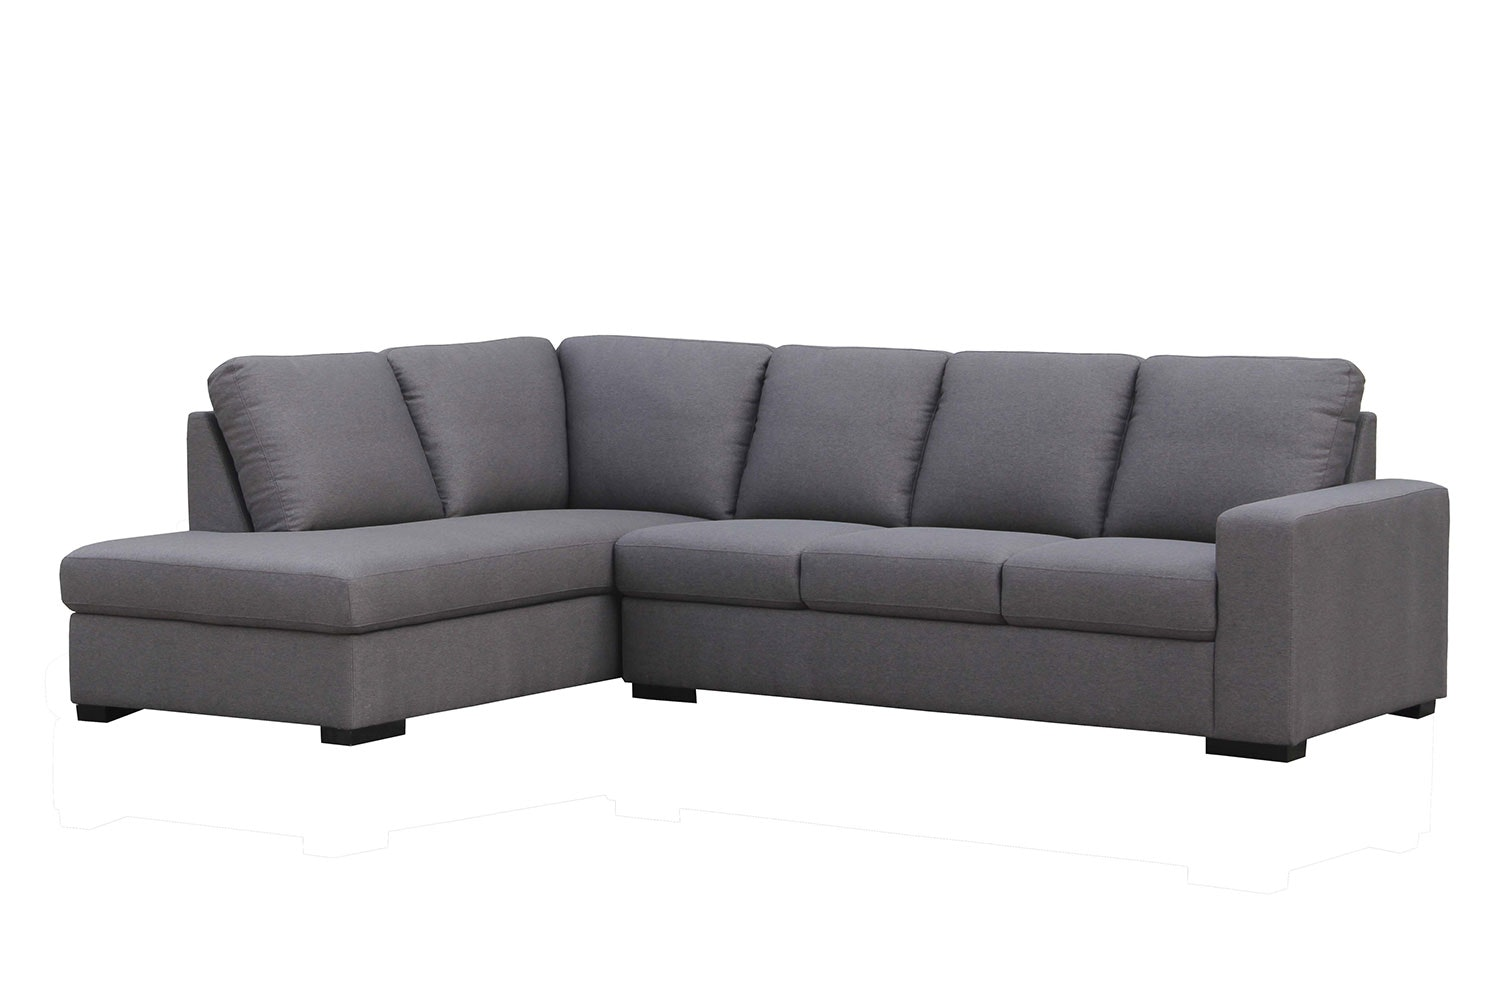 Furniture Village Annalise 4 seater fabric sofa | sofa review